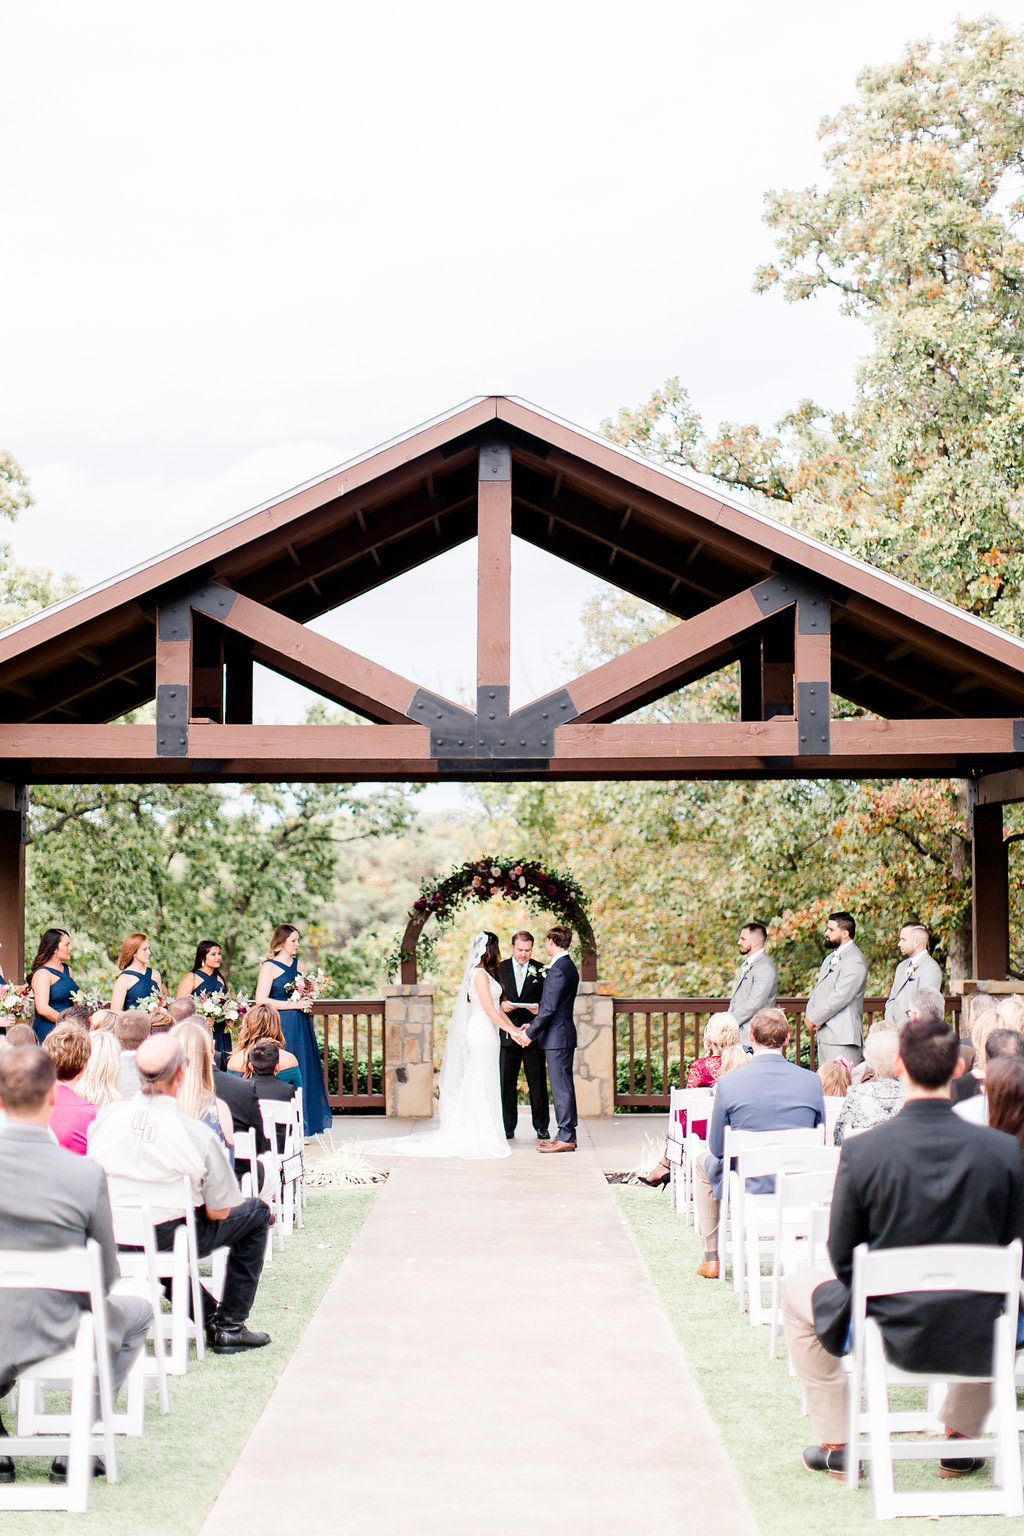 Outdoor Tulsa Wedding Venue Places To Get Married In Tulsa Oklahoma Lakefront We Oklahoma Wedding Venues Wedding Venues In Virginia Tulsa Wedding Venues